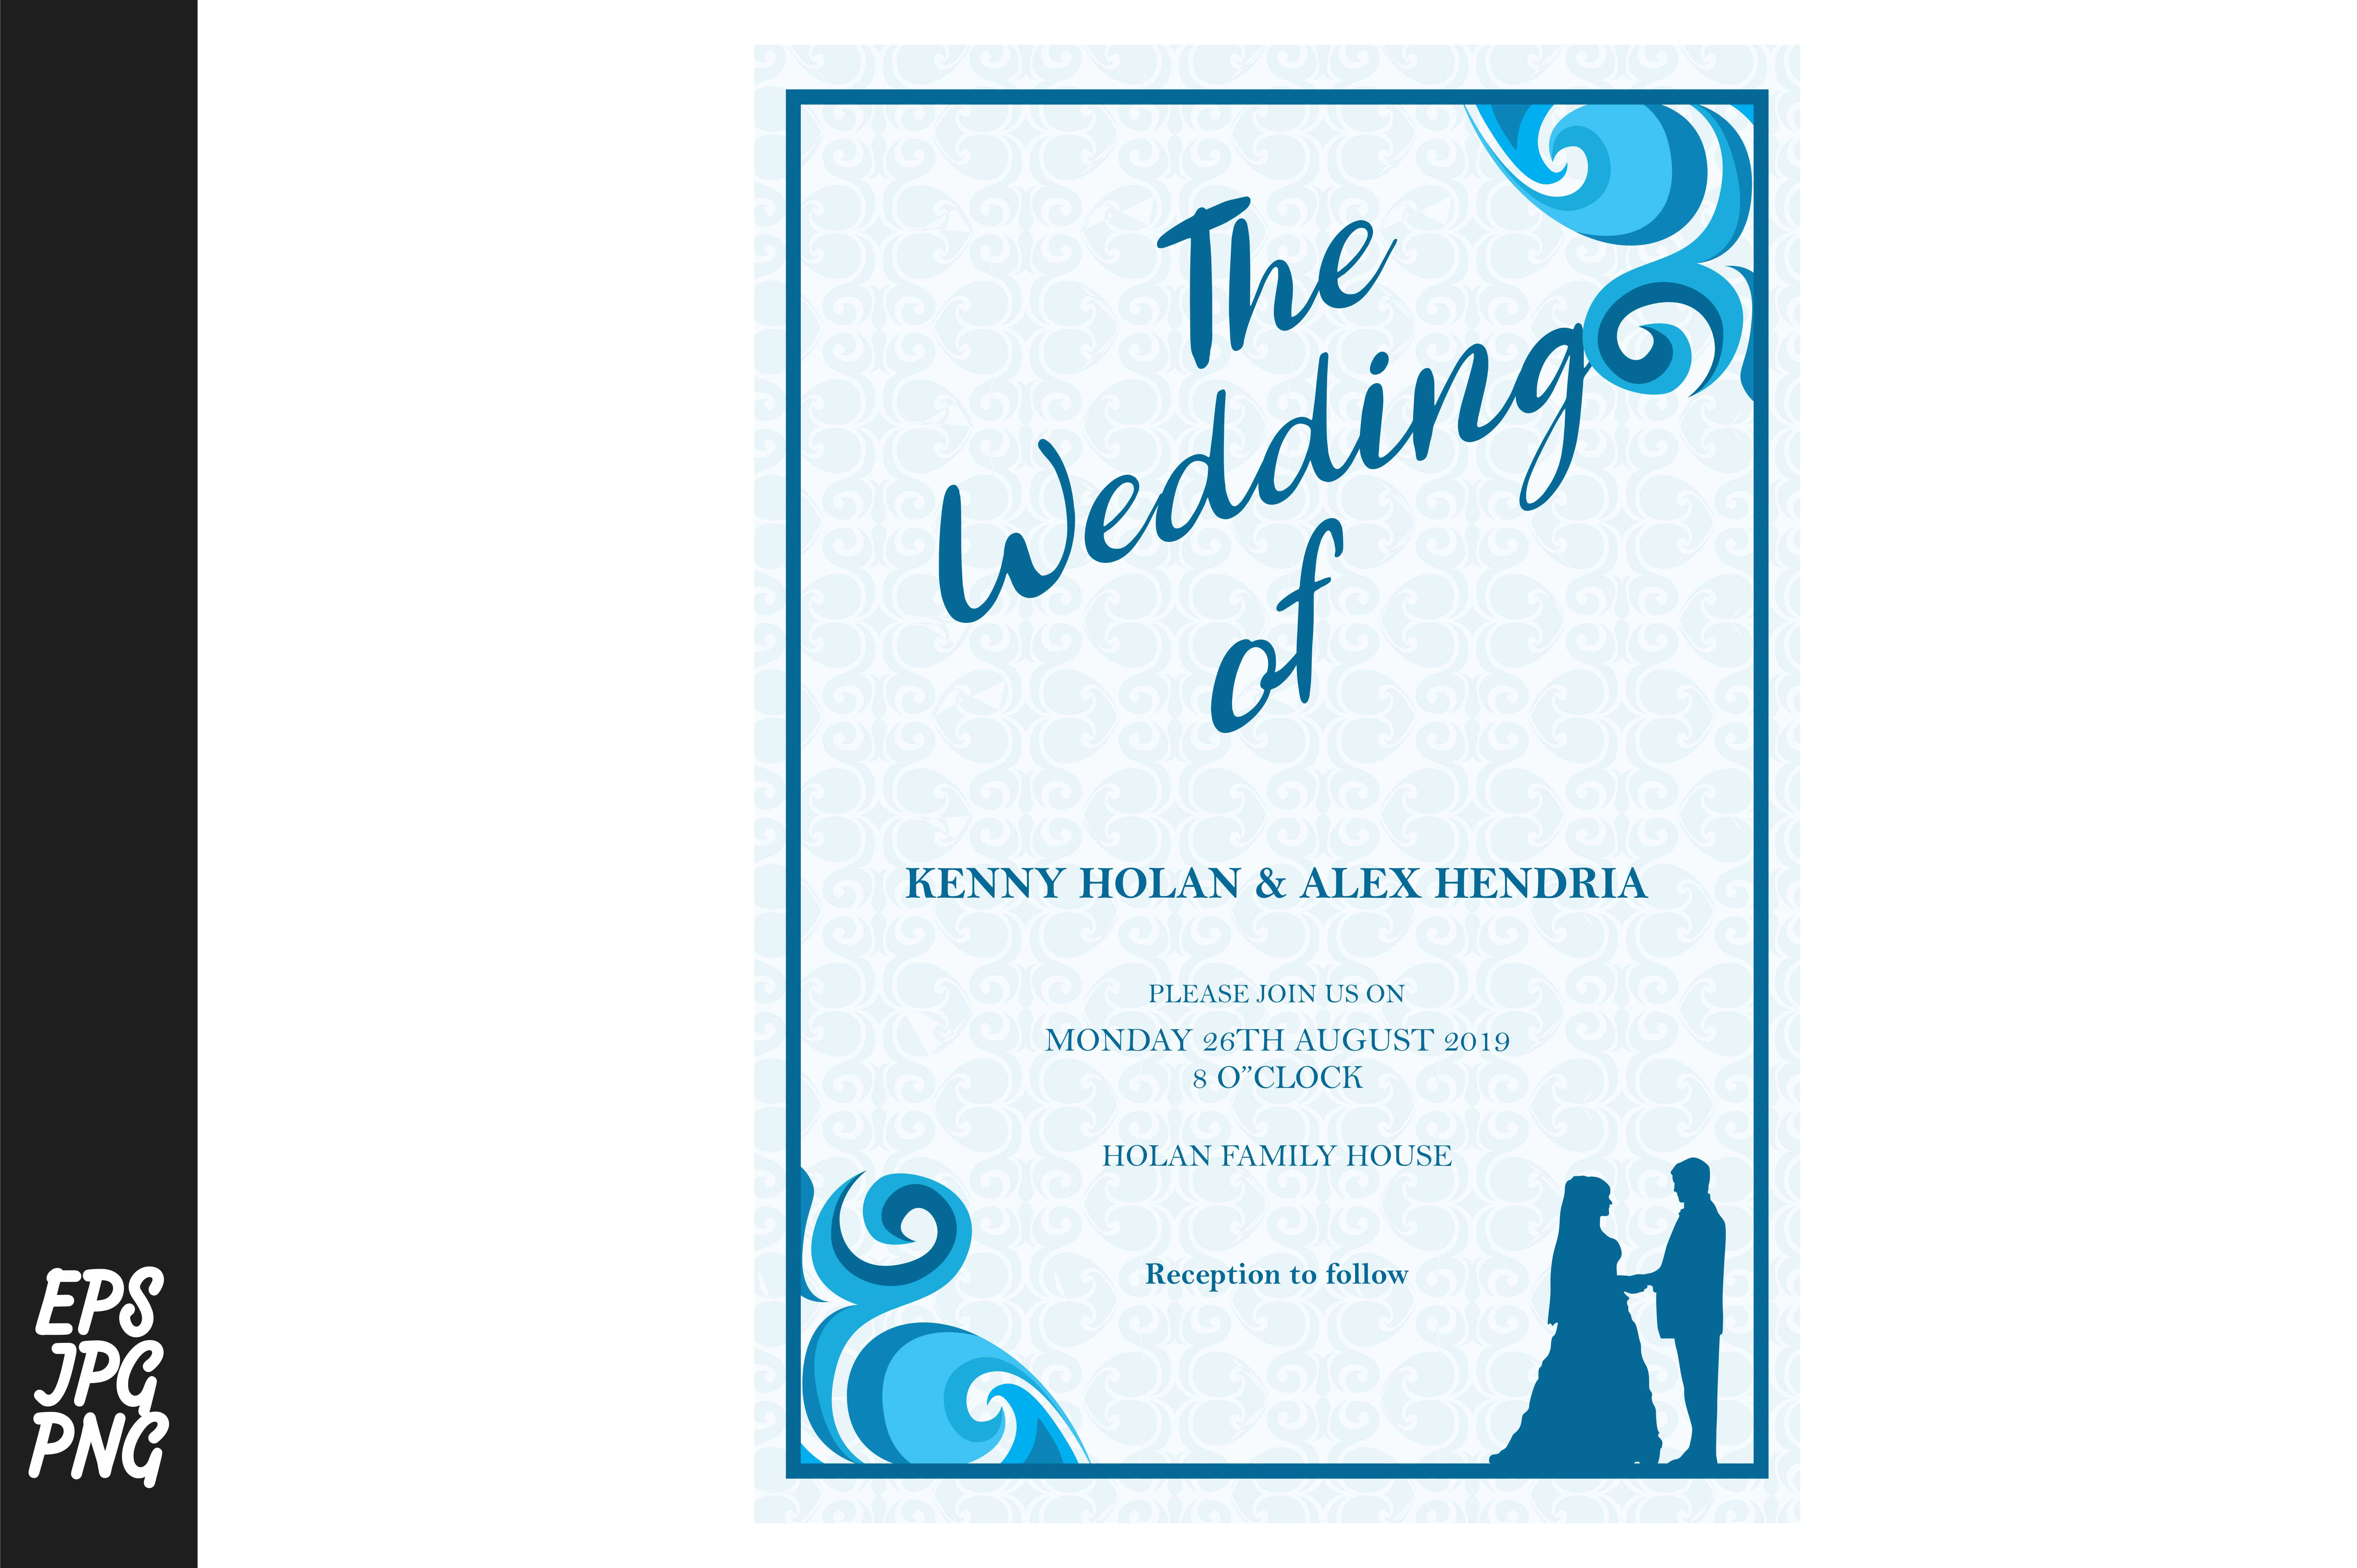 Download Free Wedding Invitation Template Graphic By Arief Sapta Adjie for Cricut Explore, Silhouette and other cutting machines.